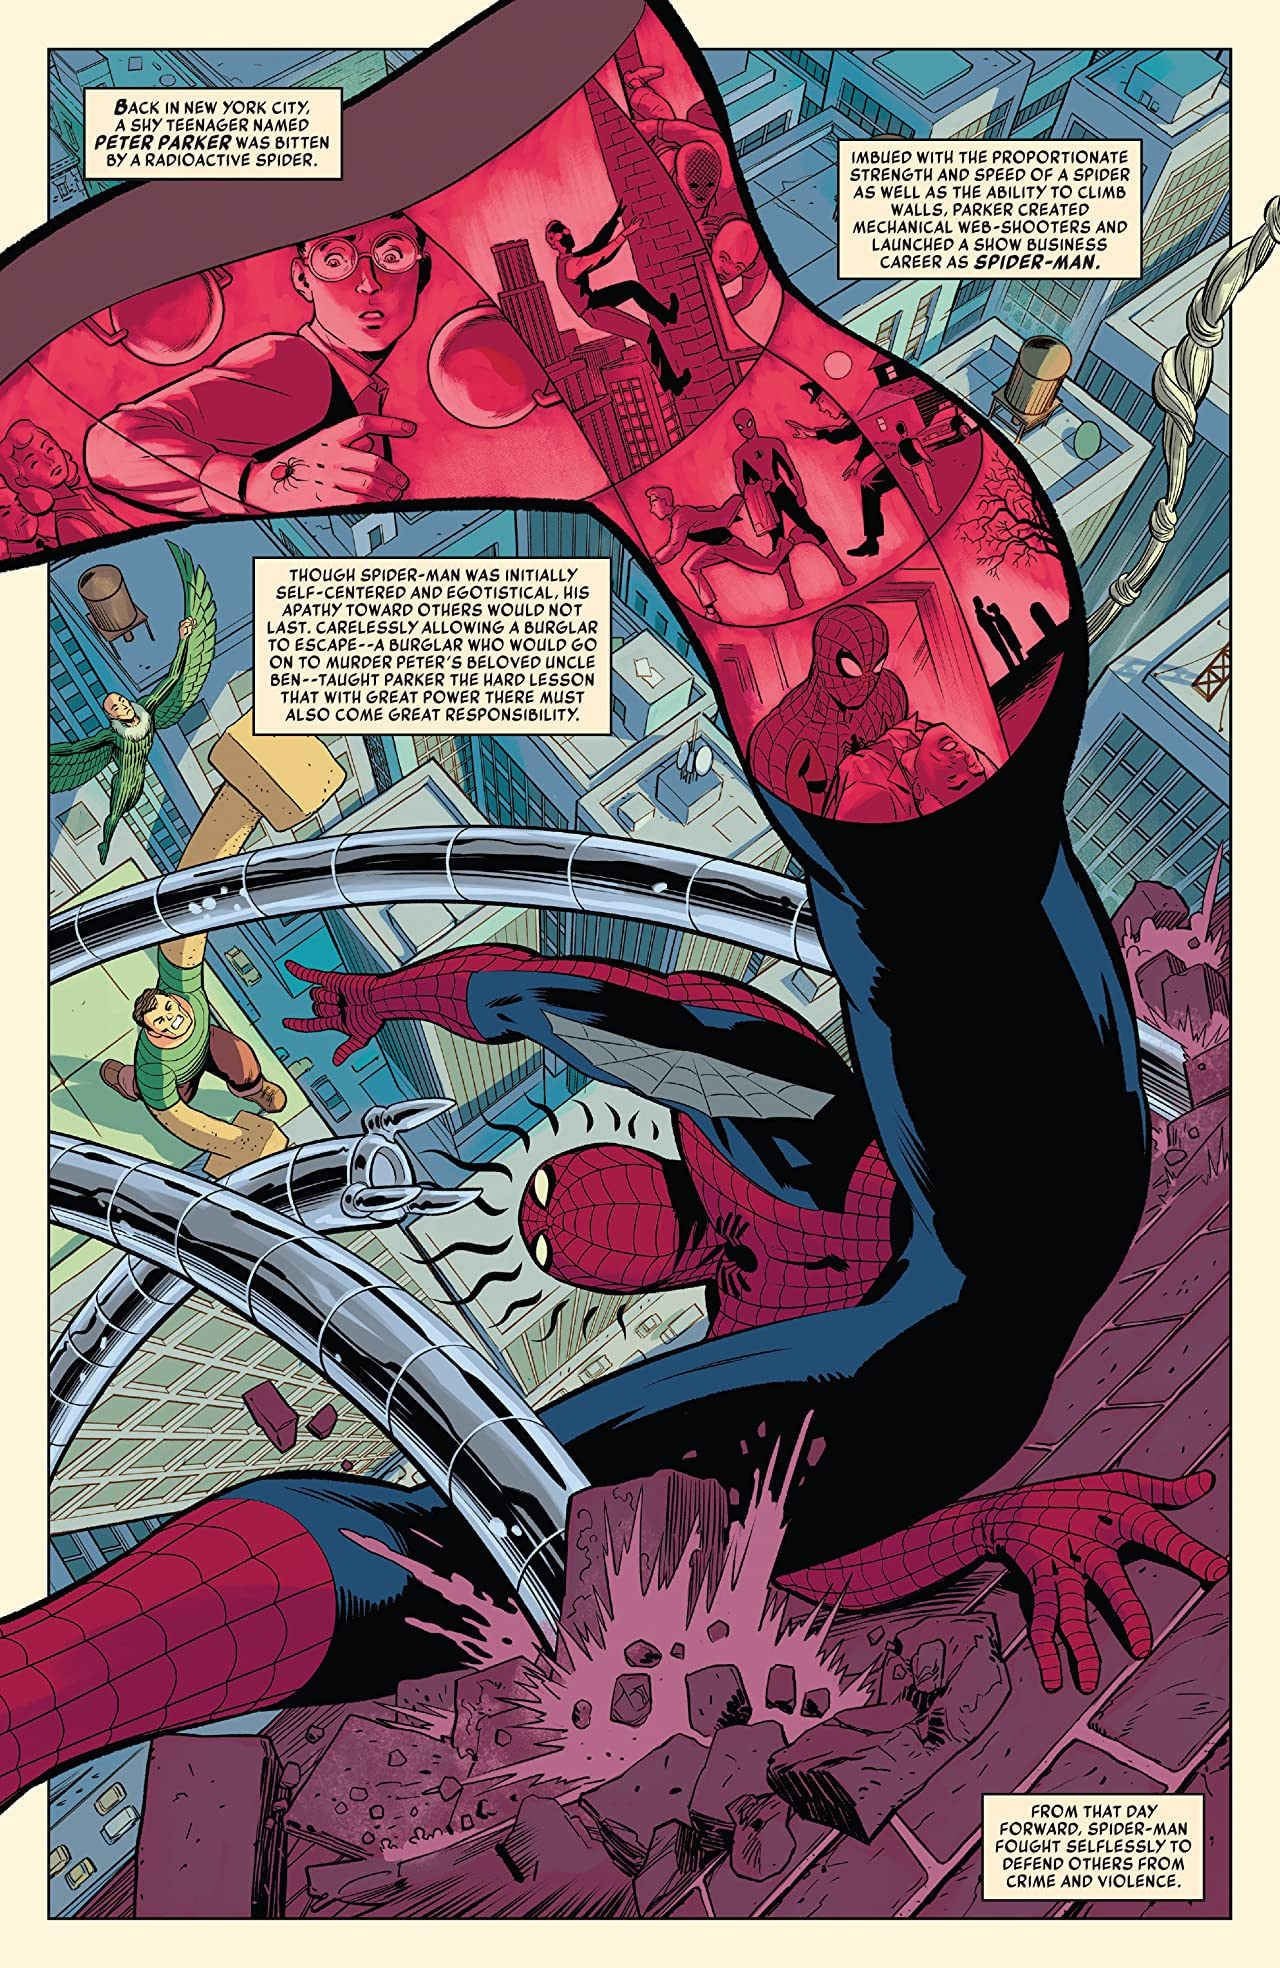 History Of The Marvel Universe (2019) #3 (of 6)